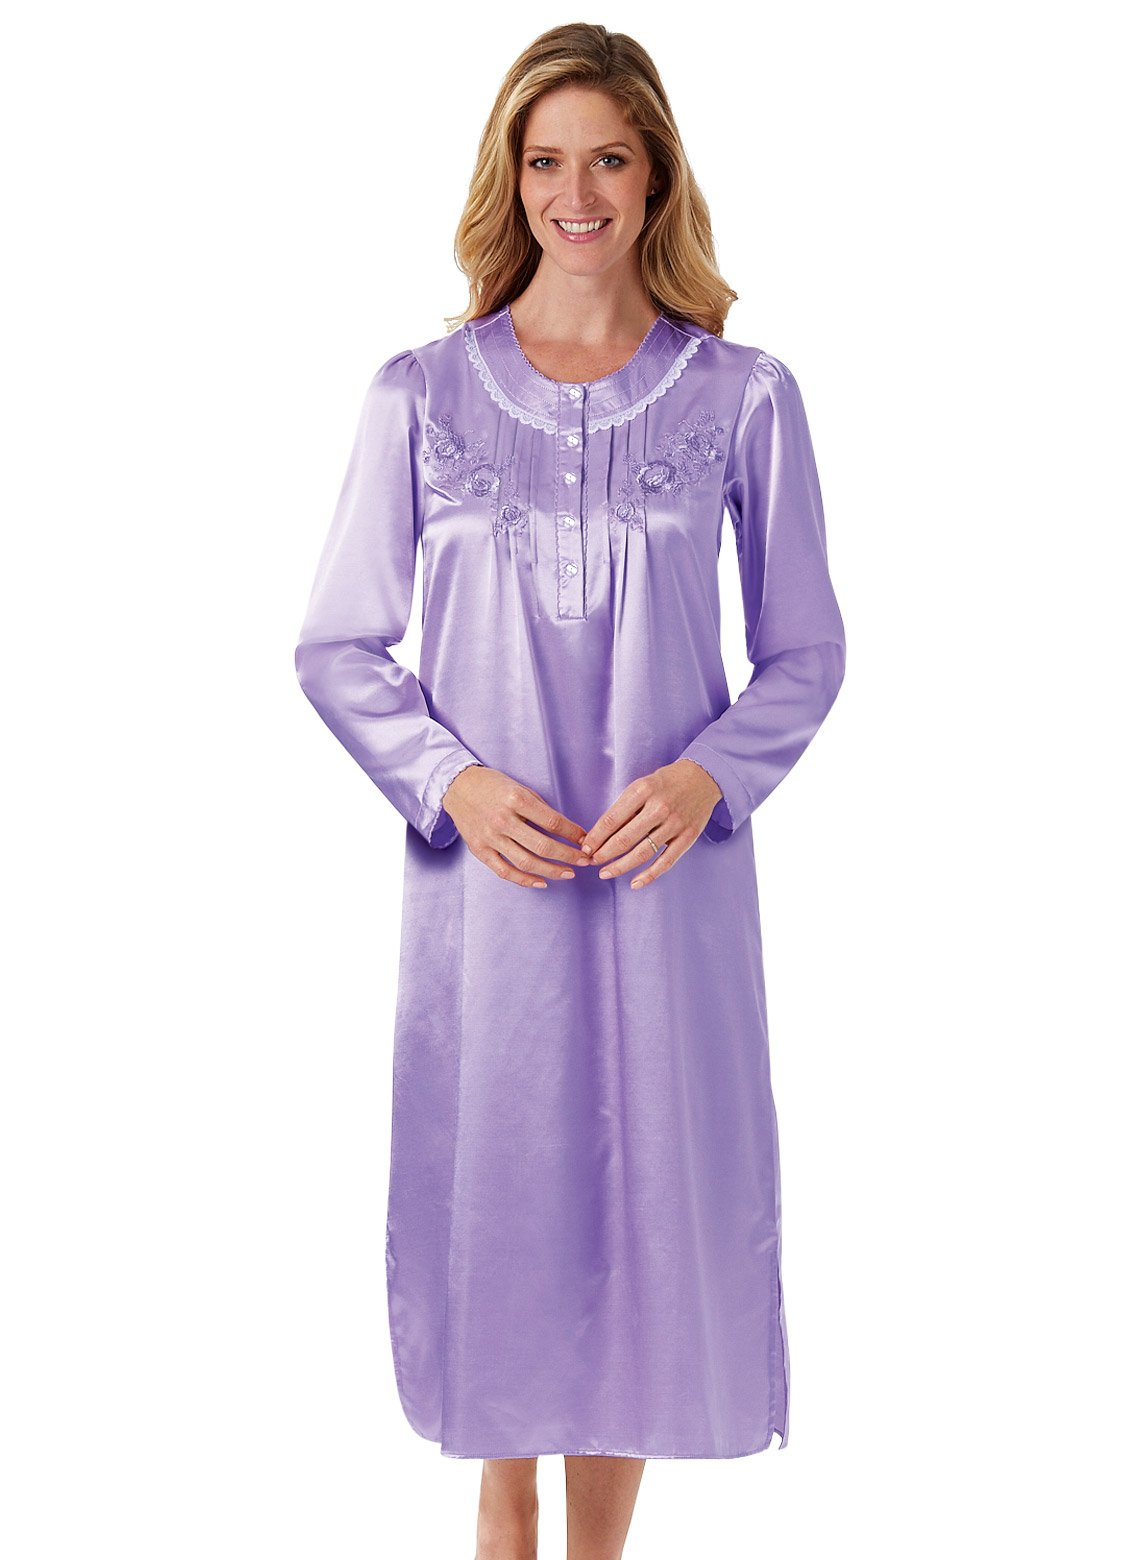 Carol Wright Gifts Brushed Back Satin Gown, Color Lilac, Size Extra Large (1X), Lilac, Size Extra Large (1X)